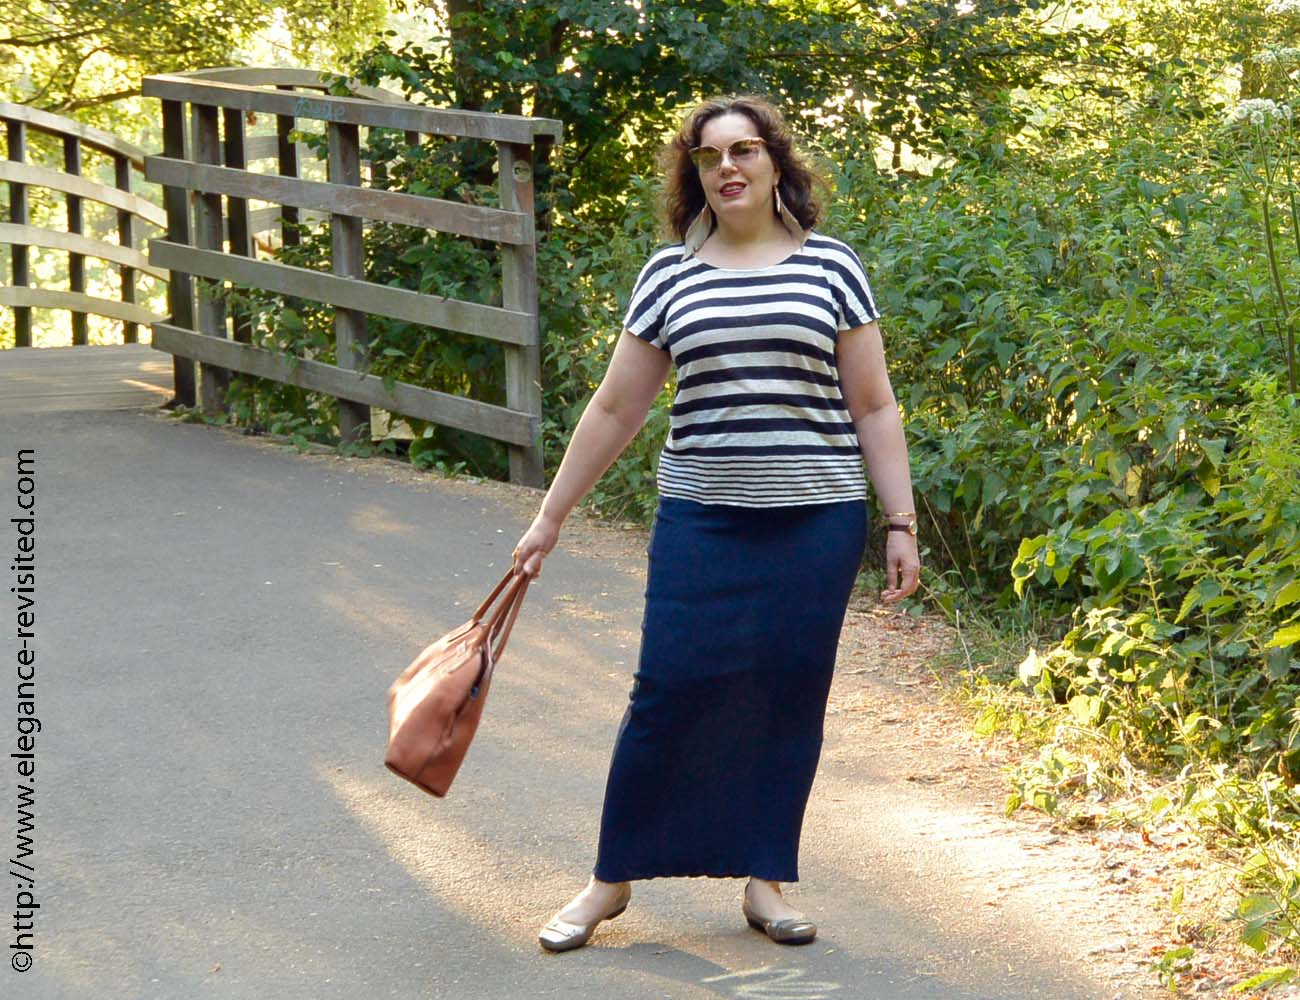 39adda3b71 Styling a loose fitting long skirt and her linen tee shirt worked a treat  for keeping her cool and scoring high in the fashion stakes!